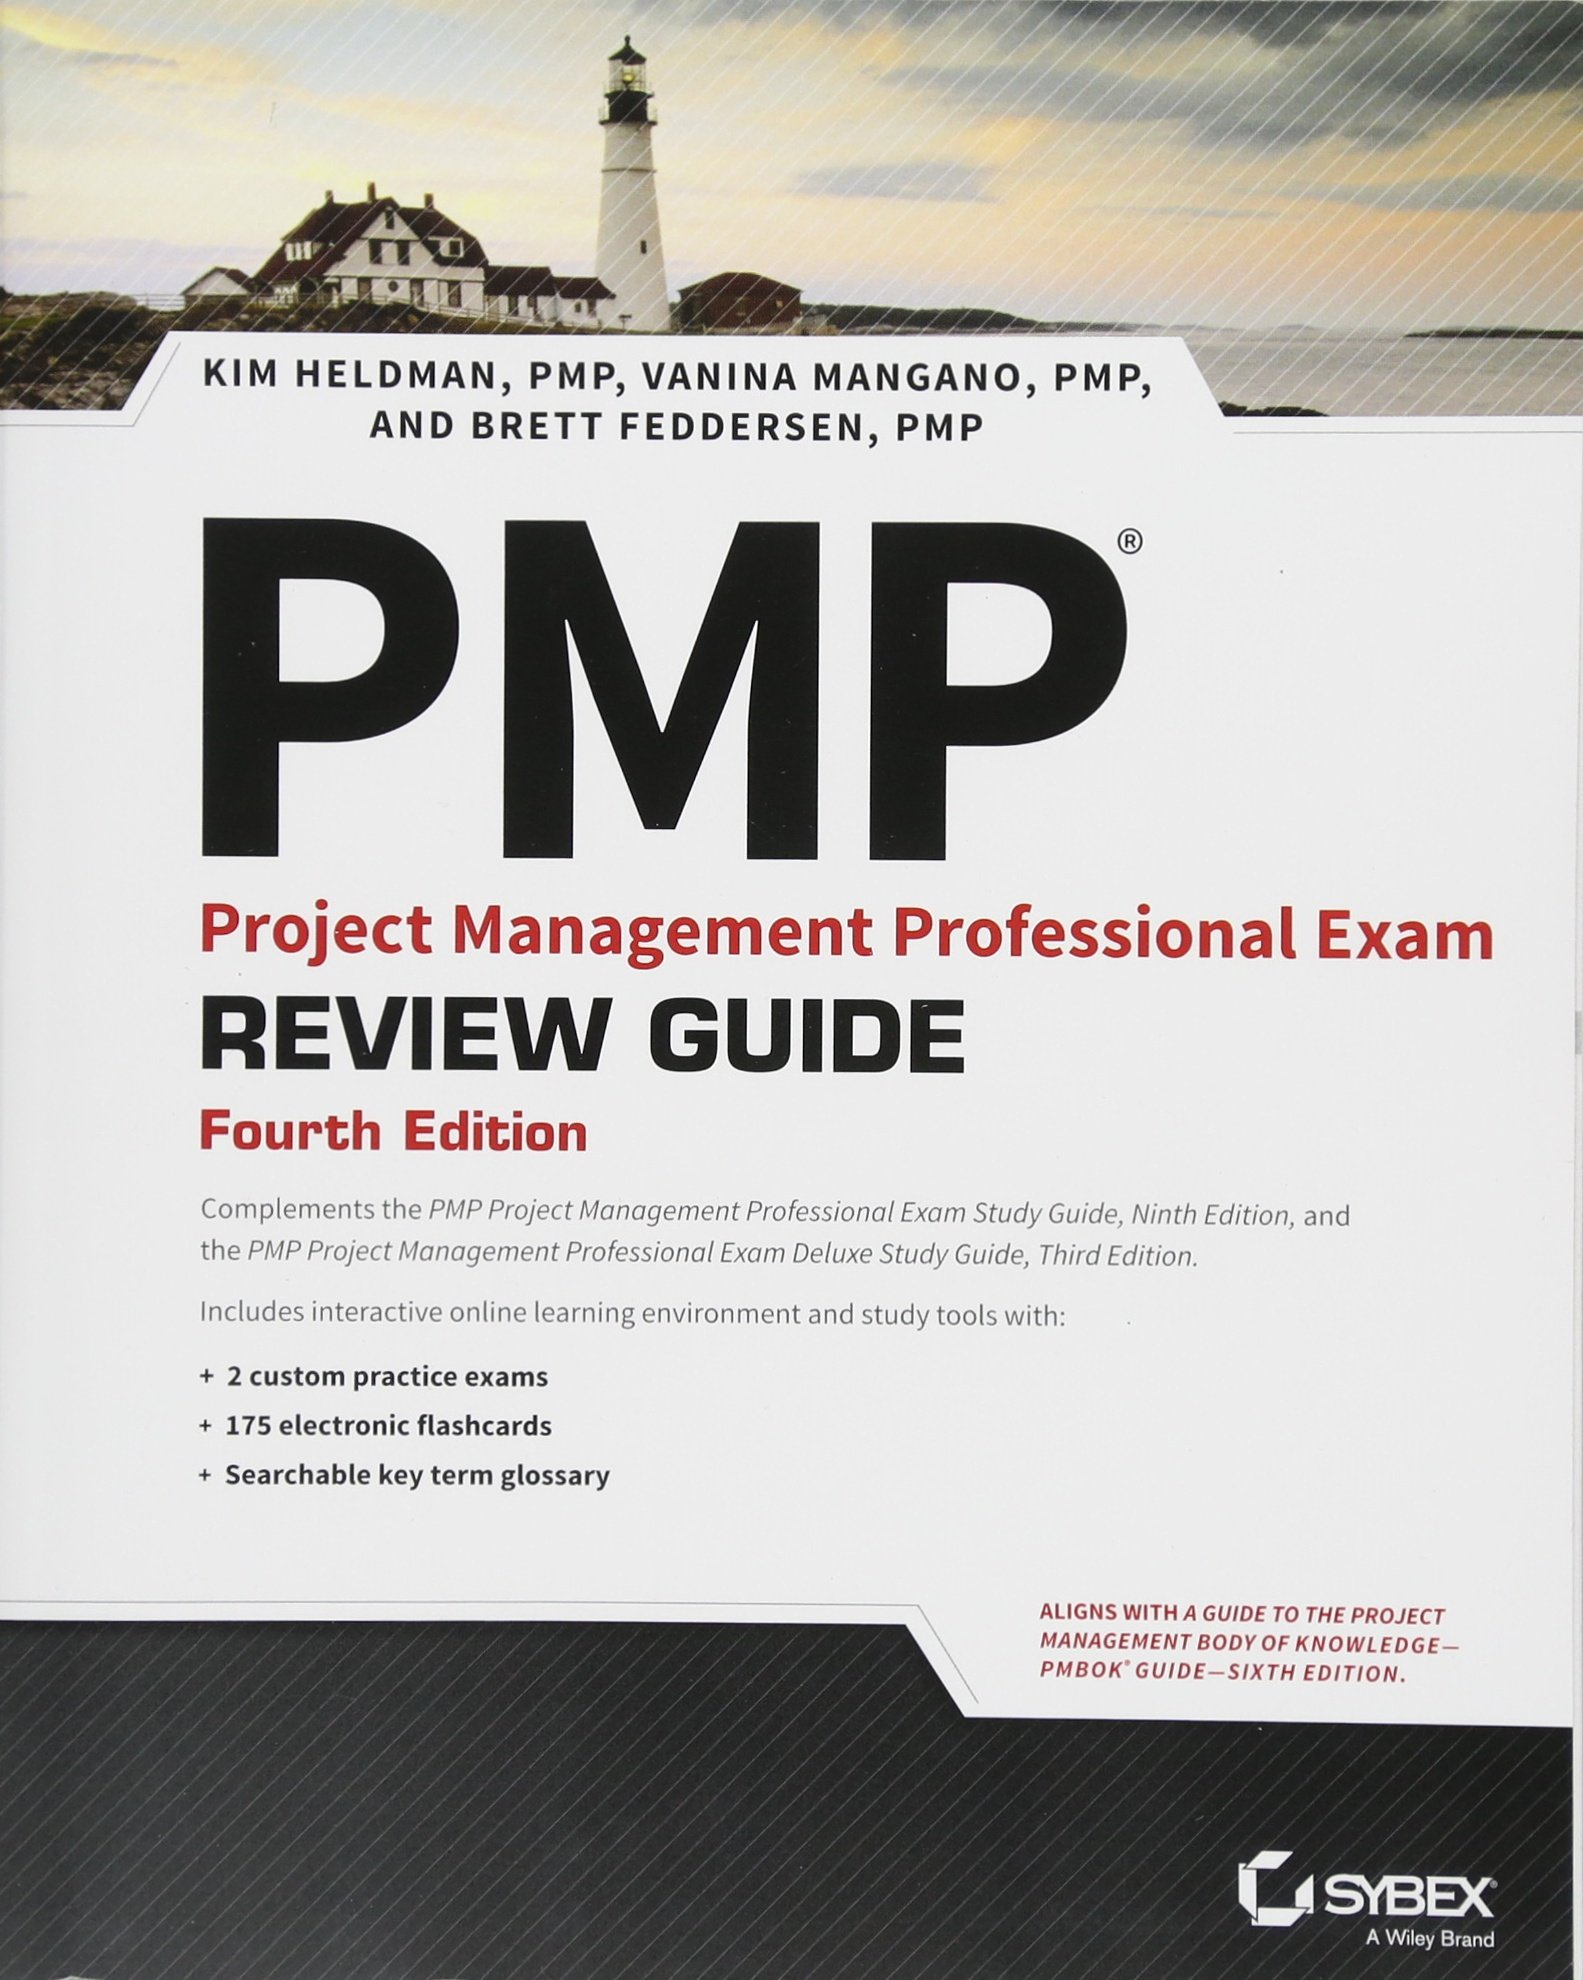 Pmp Project Management Professional Exam Review Guide Kim Heldman